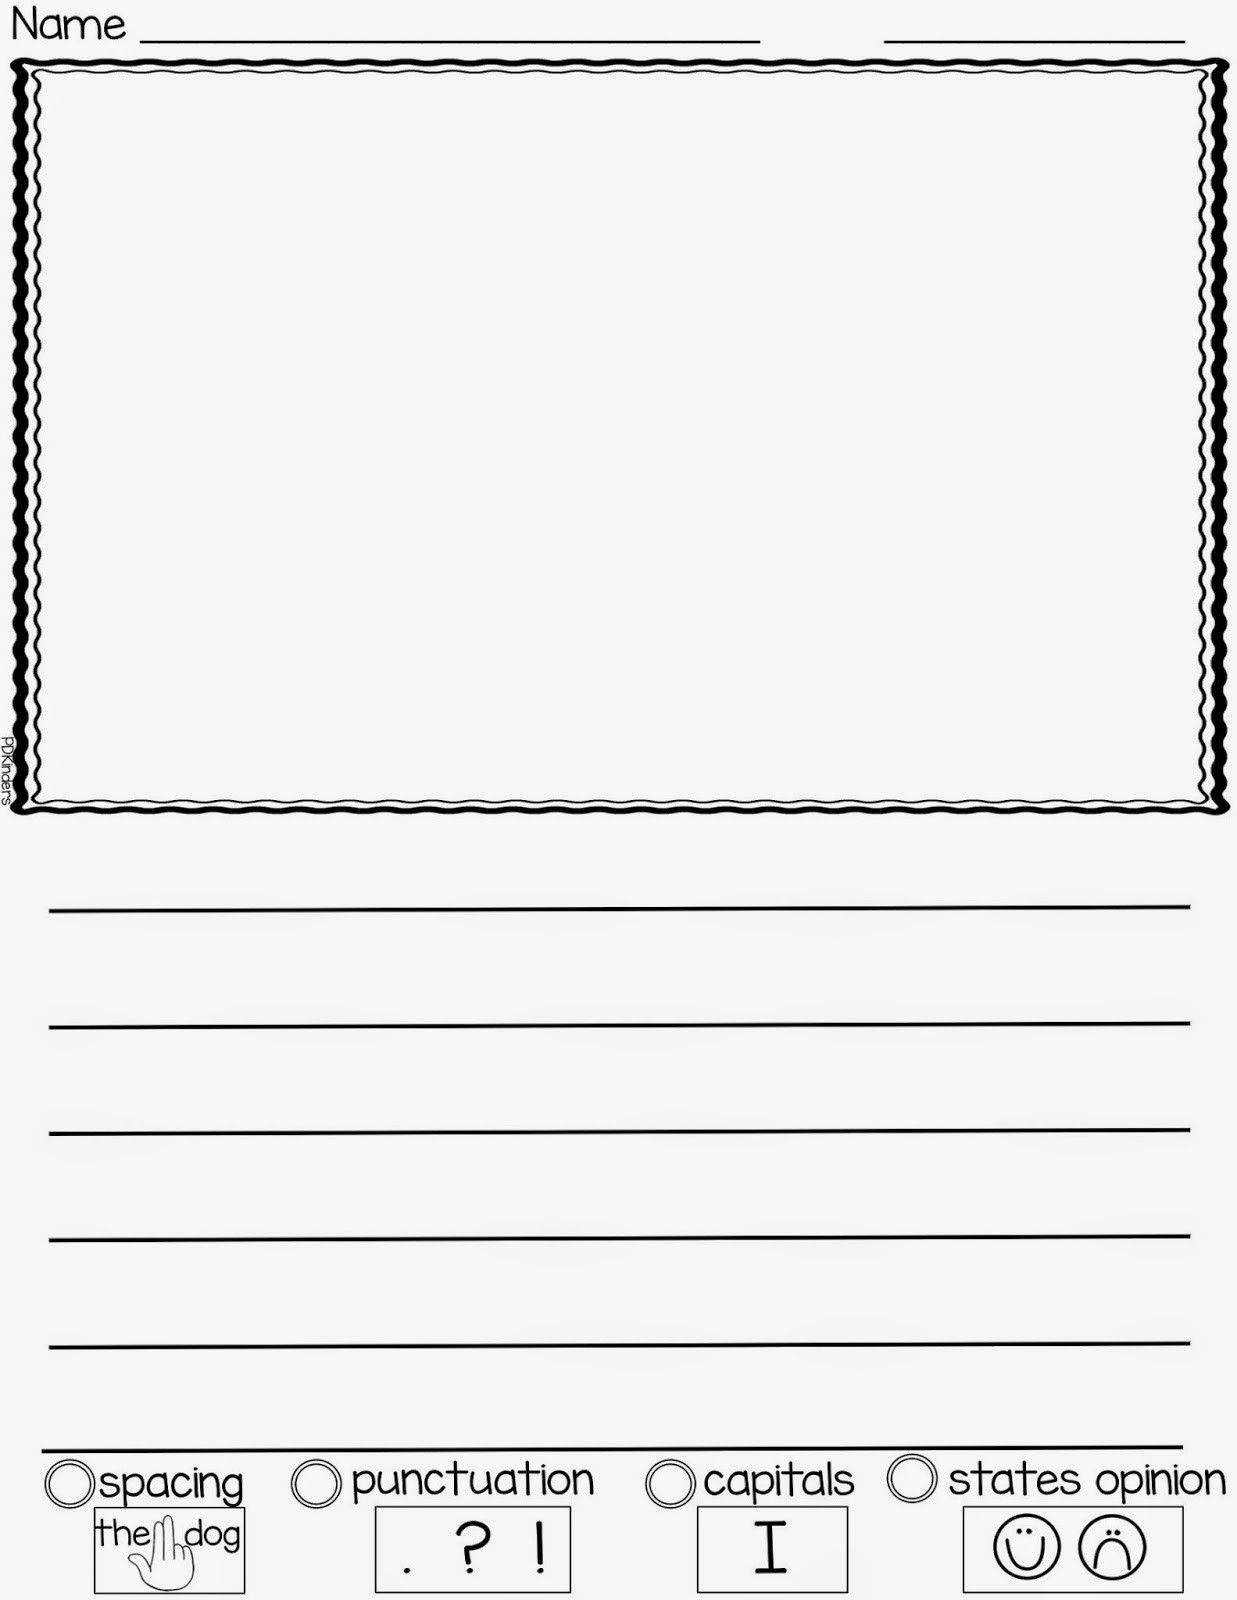 New Printable Lined Paper For Kids | Chart And Template World - Free Printable Kindergarten Lined Paper Template